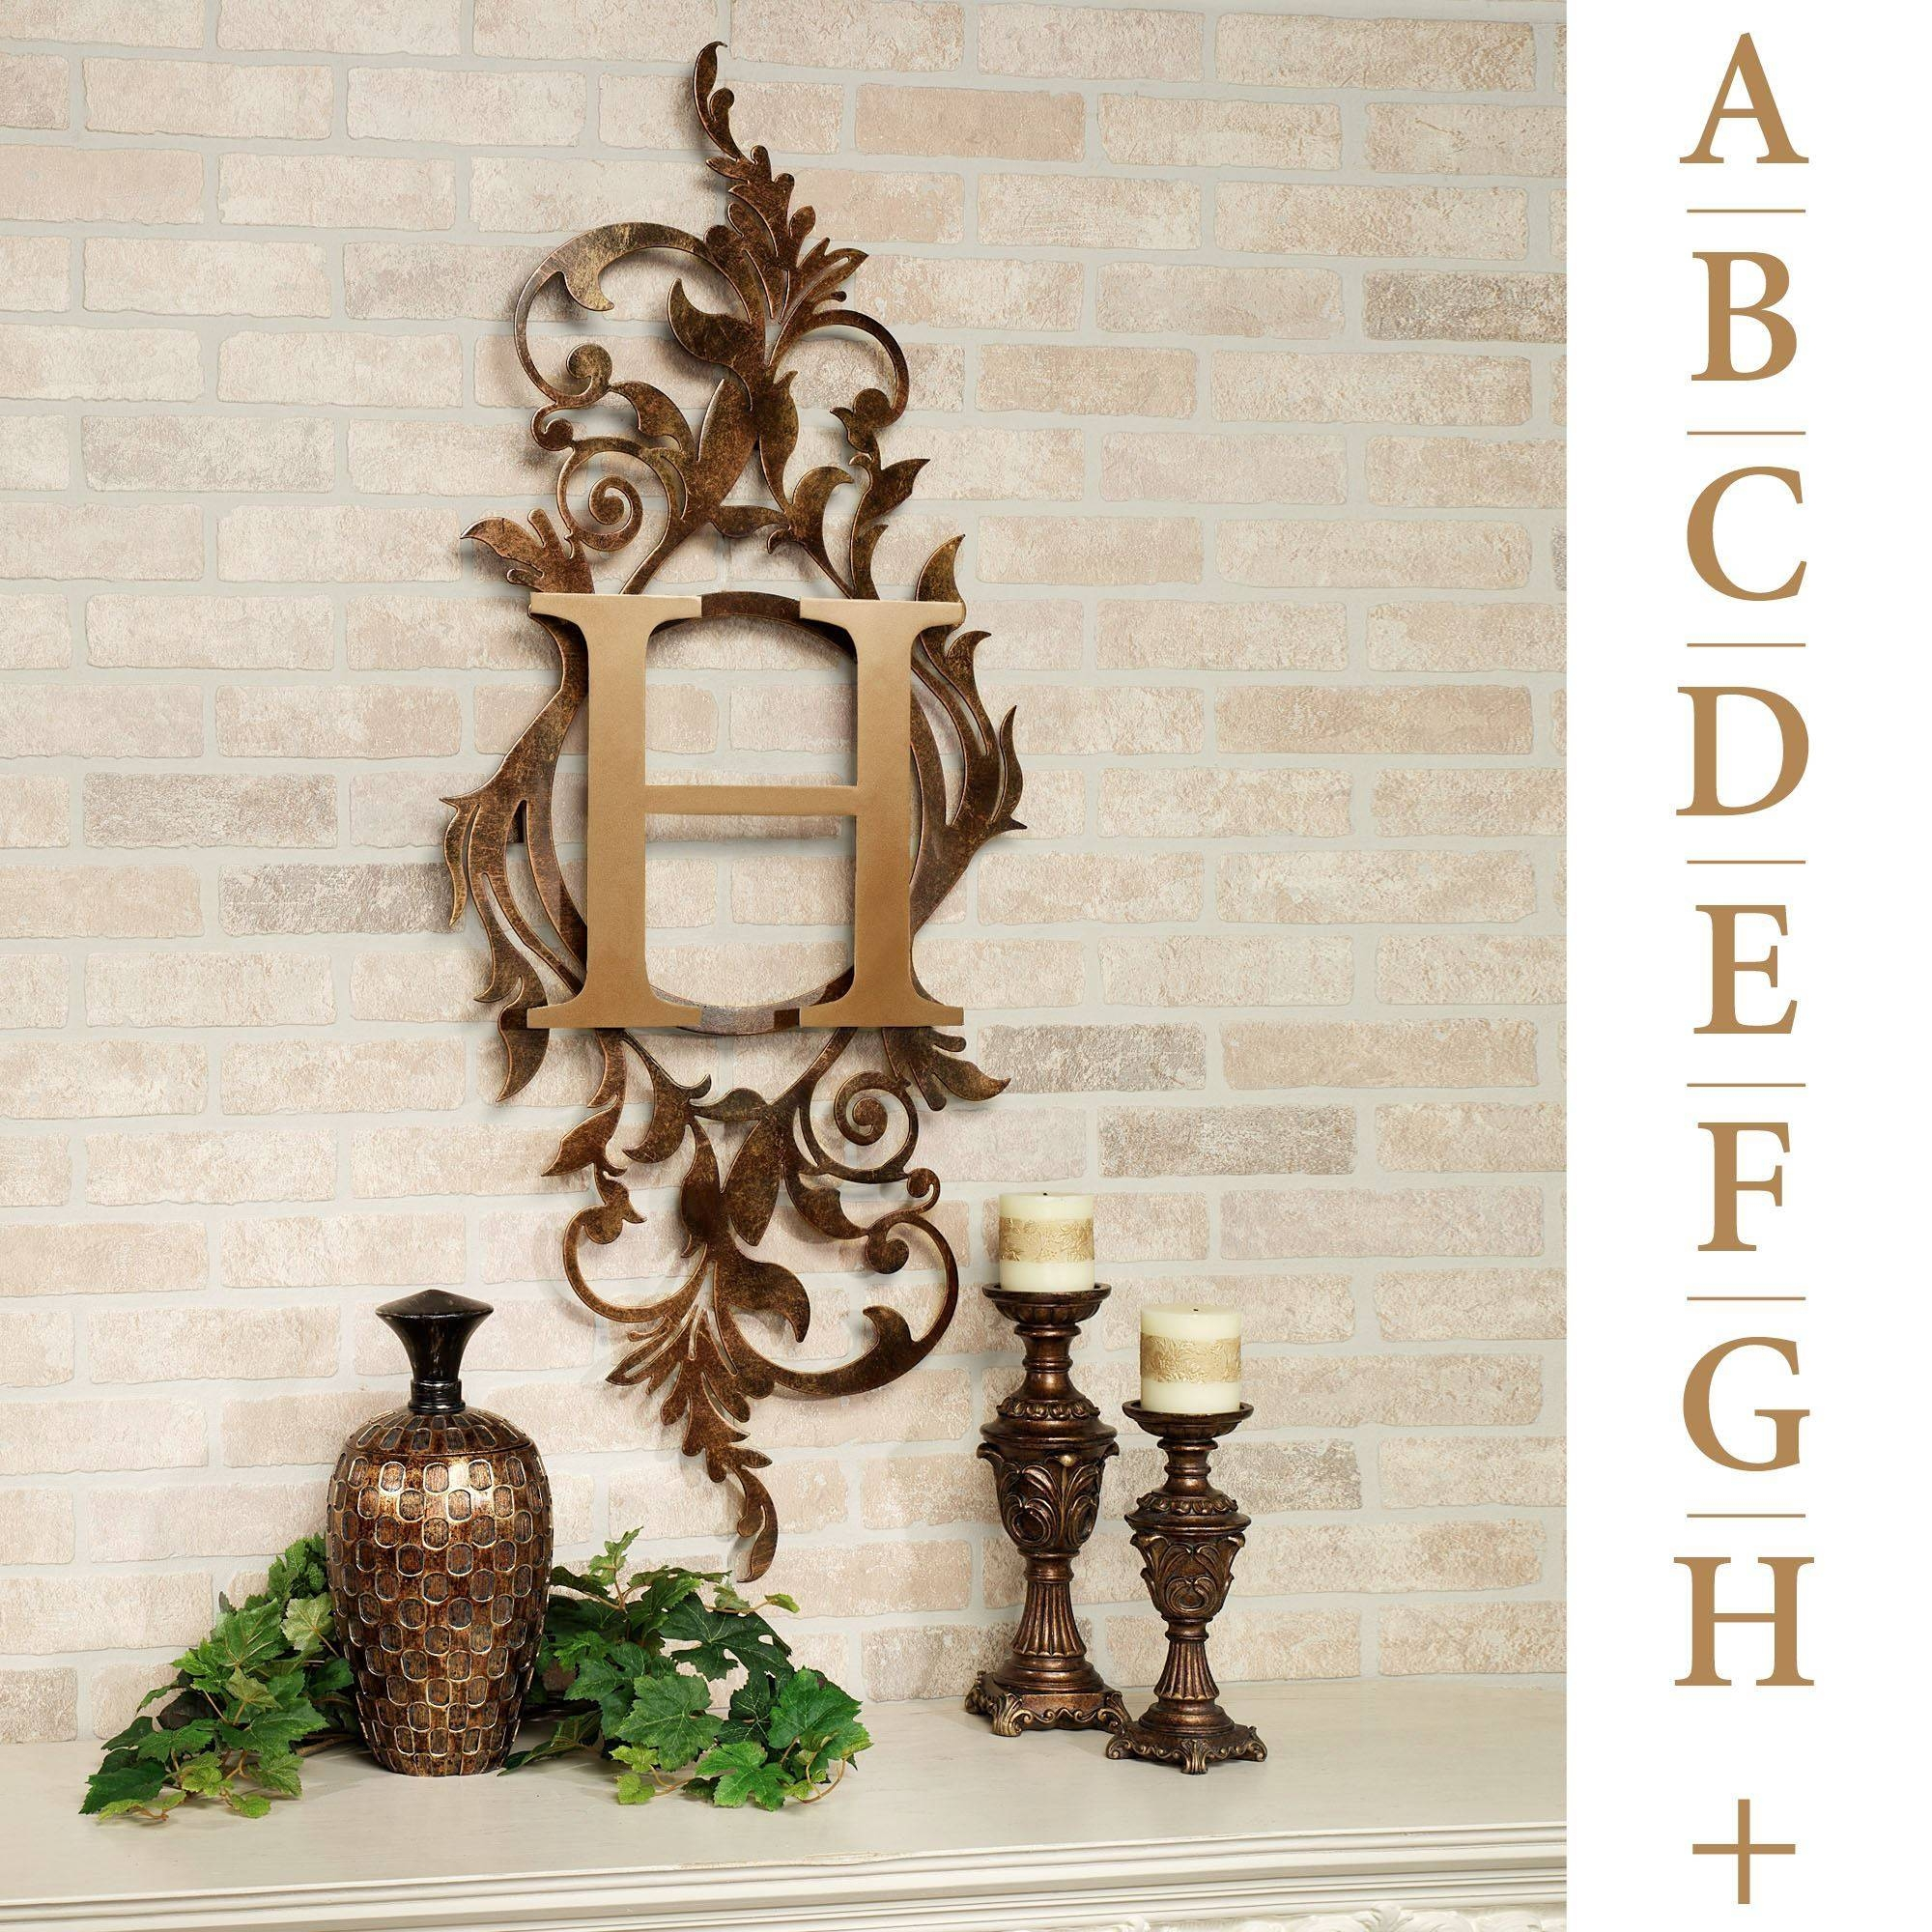 Meglynn Monogram Vertical Metal Wall Art Sign Regarding 2018 Vertical Metal Wall Art (View 6 of 20)